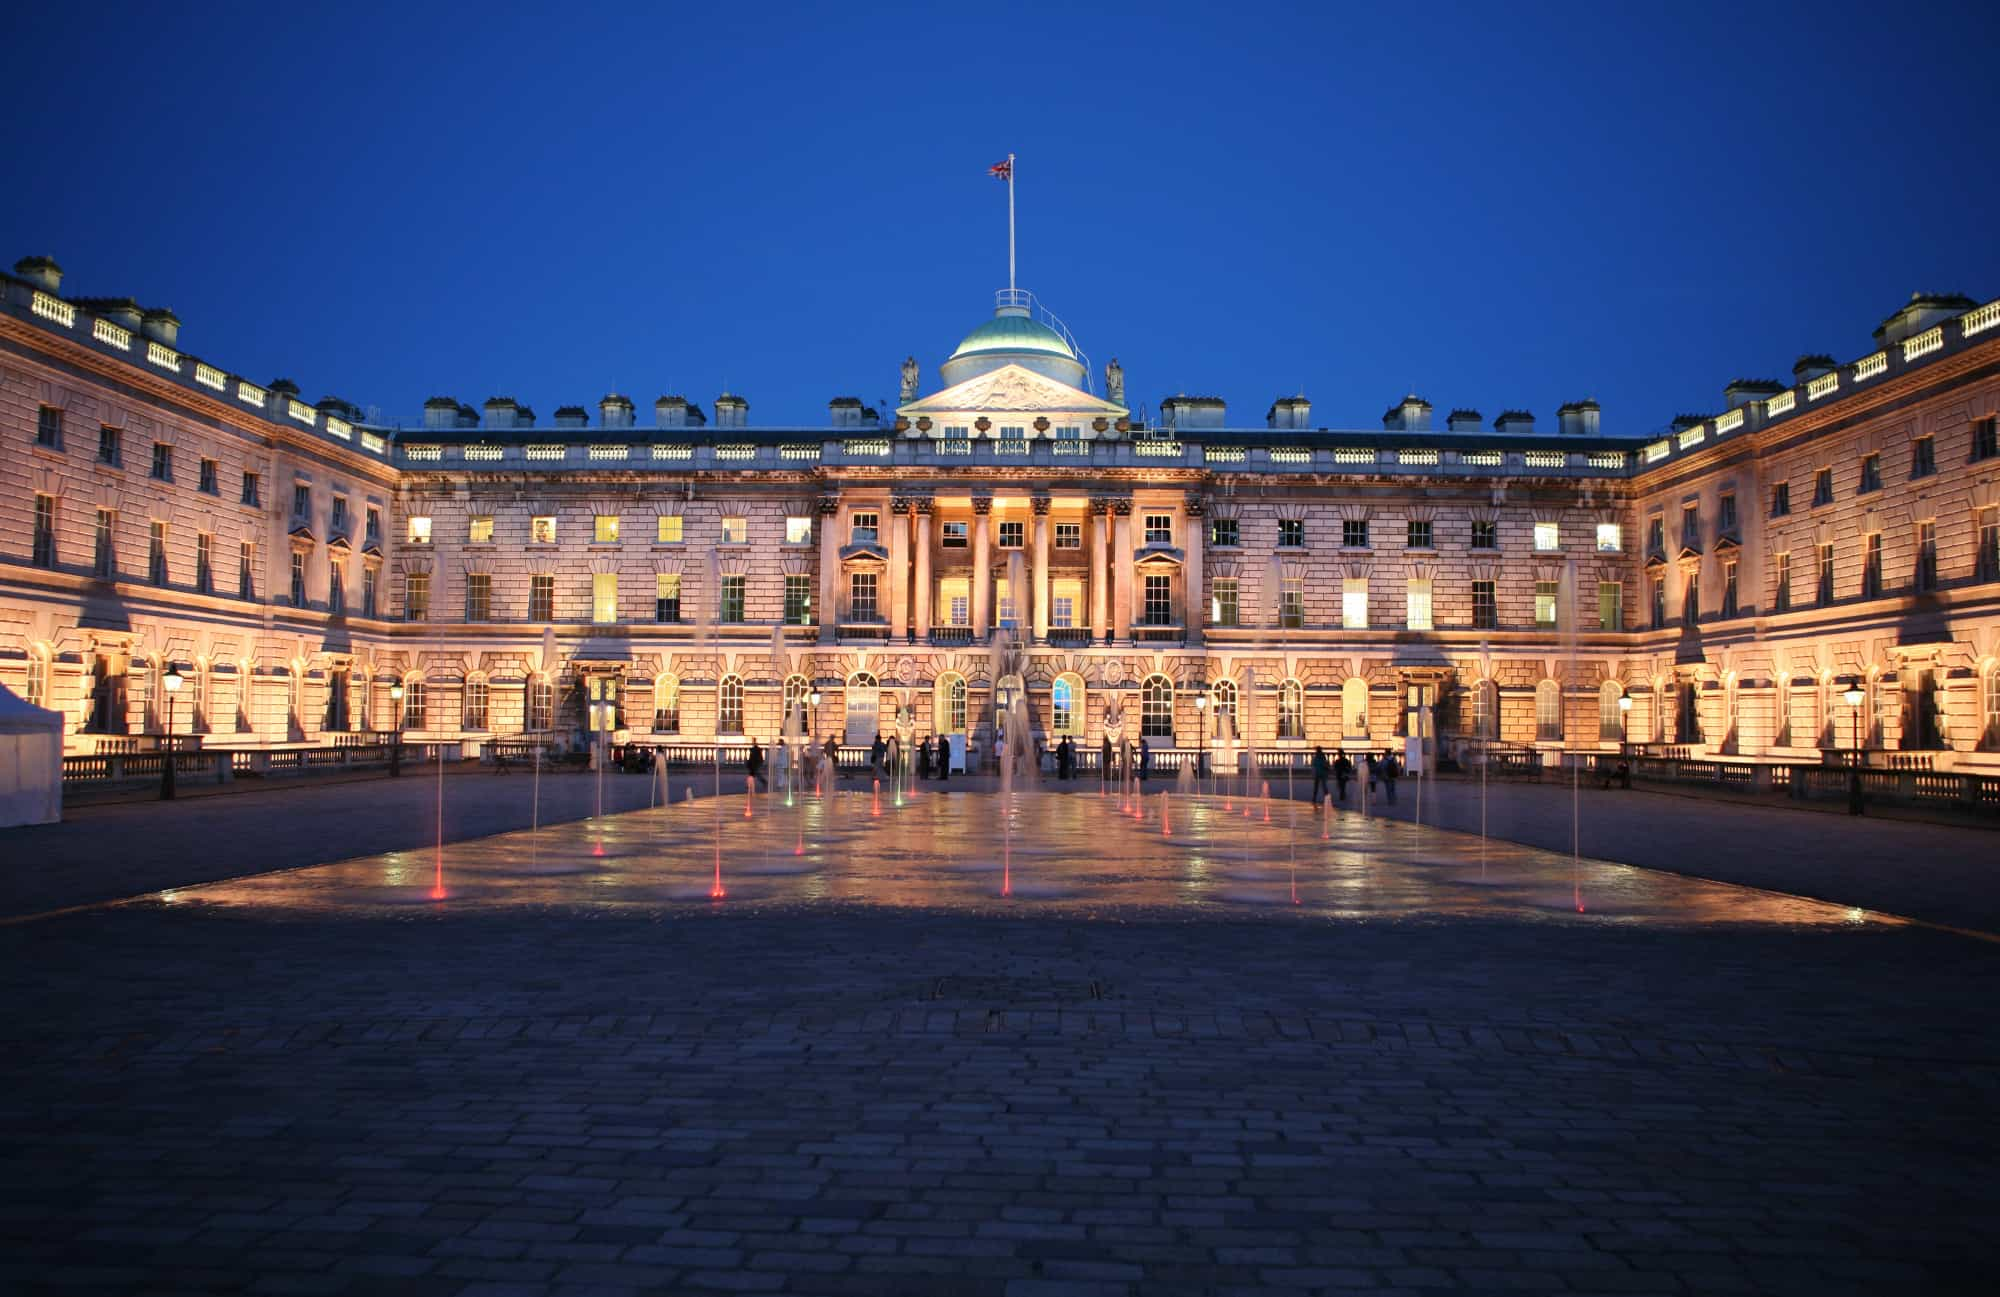 Somerset House installs UK's first Toucan Eco bio-cleaning system